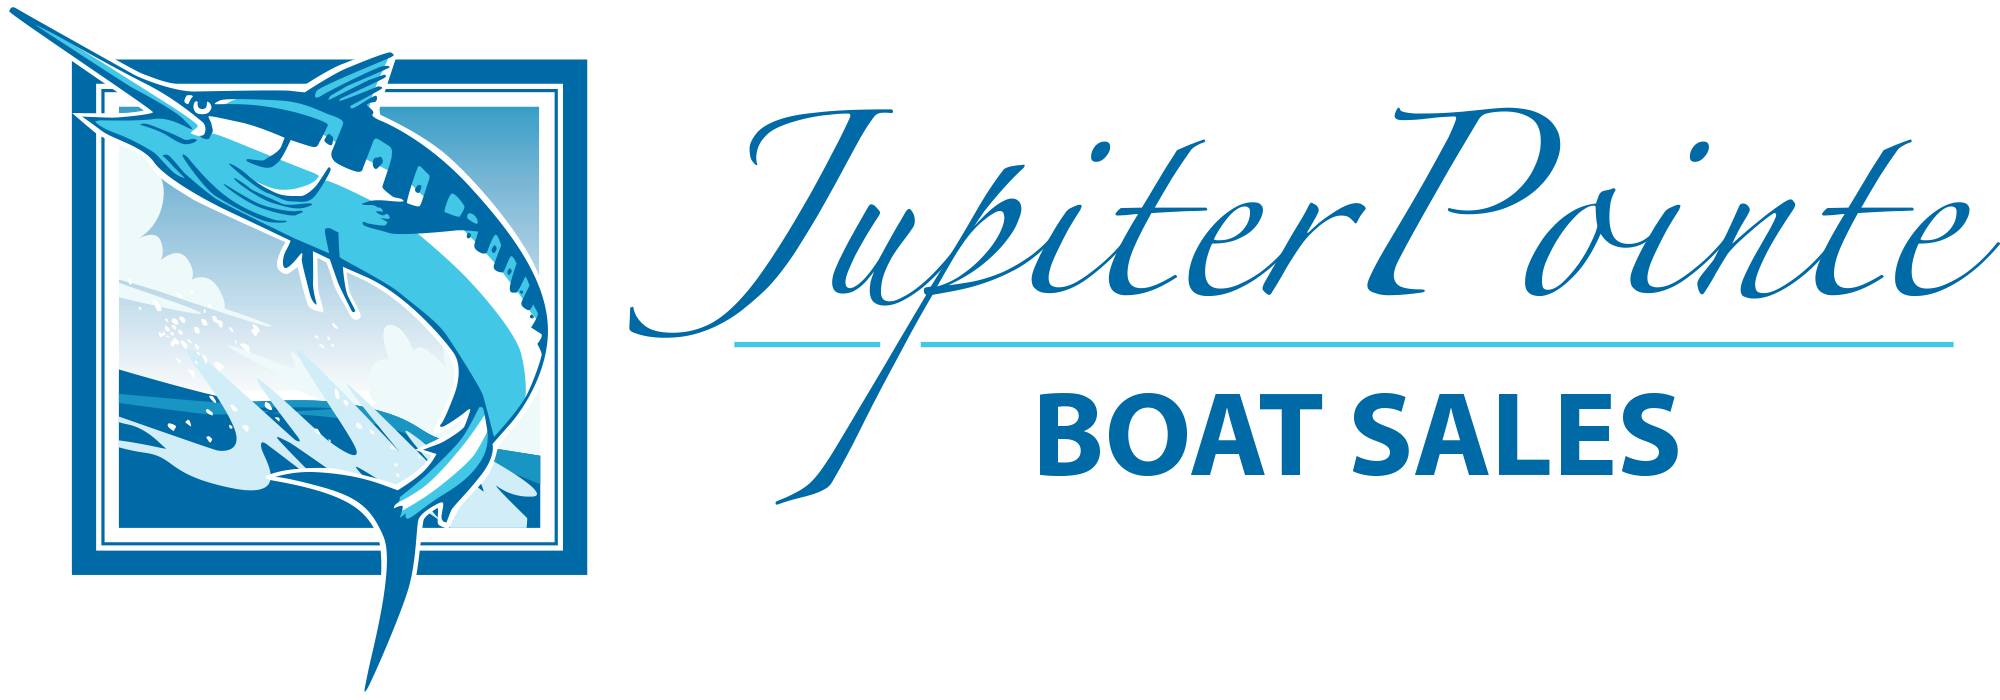 Century boats for sale - Boat Trader